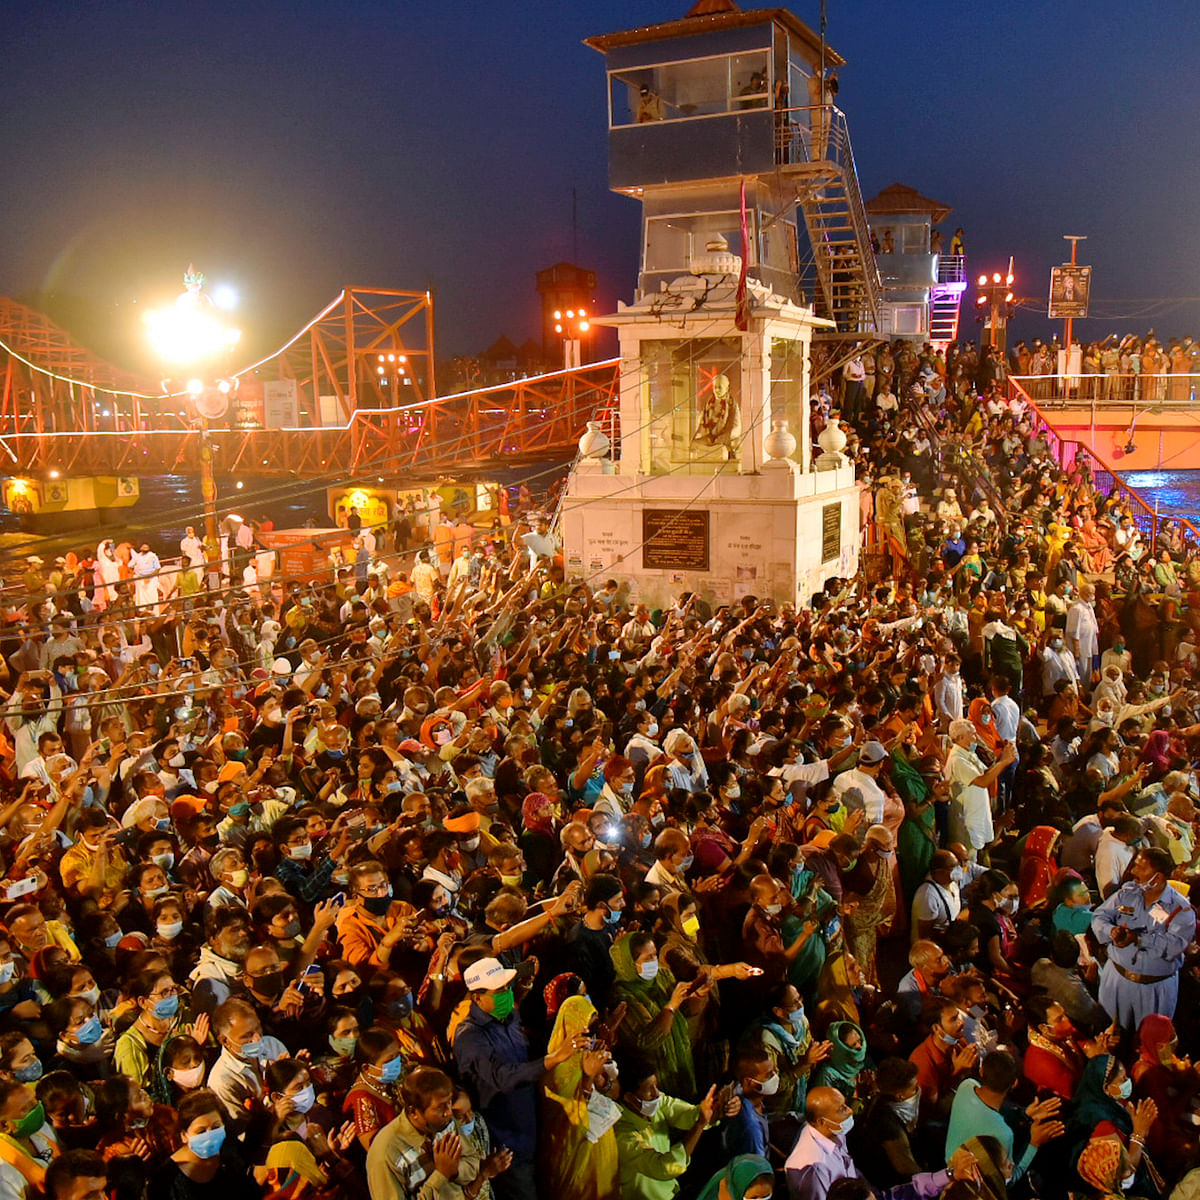 COVID-19 second wave: Kumbh Mela crowd is different from 'others', says Uttarakhand CM Tirath Singh Rawat